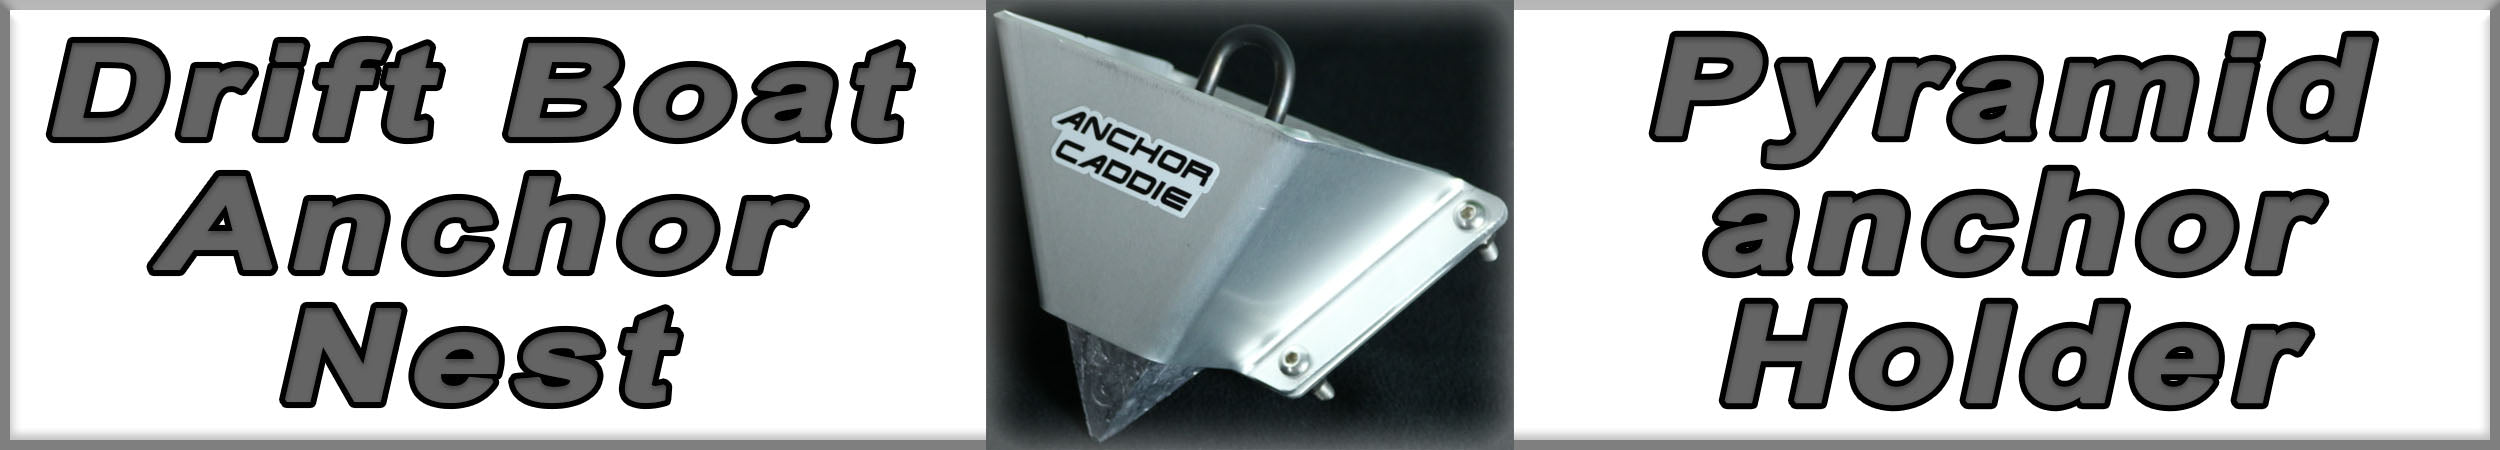 Drift Boat Anchor Nest or Pyramid Anchor Holder